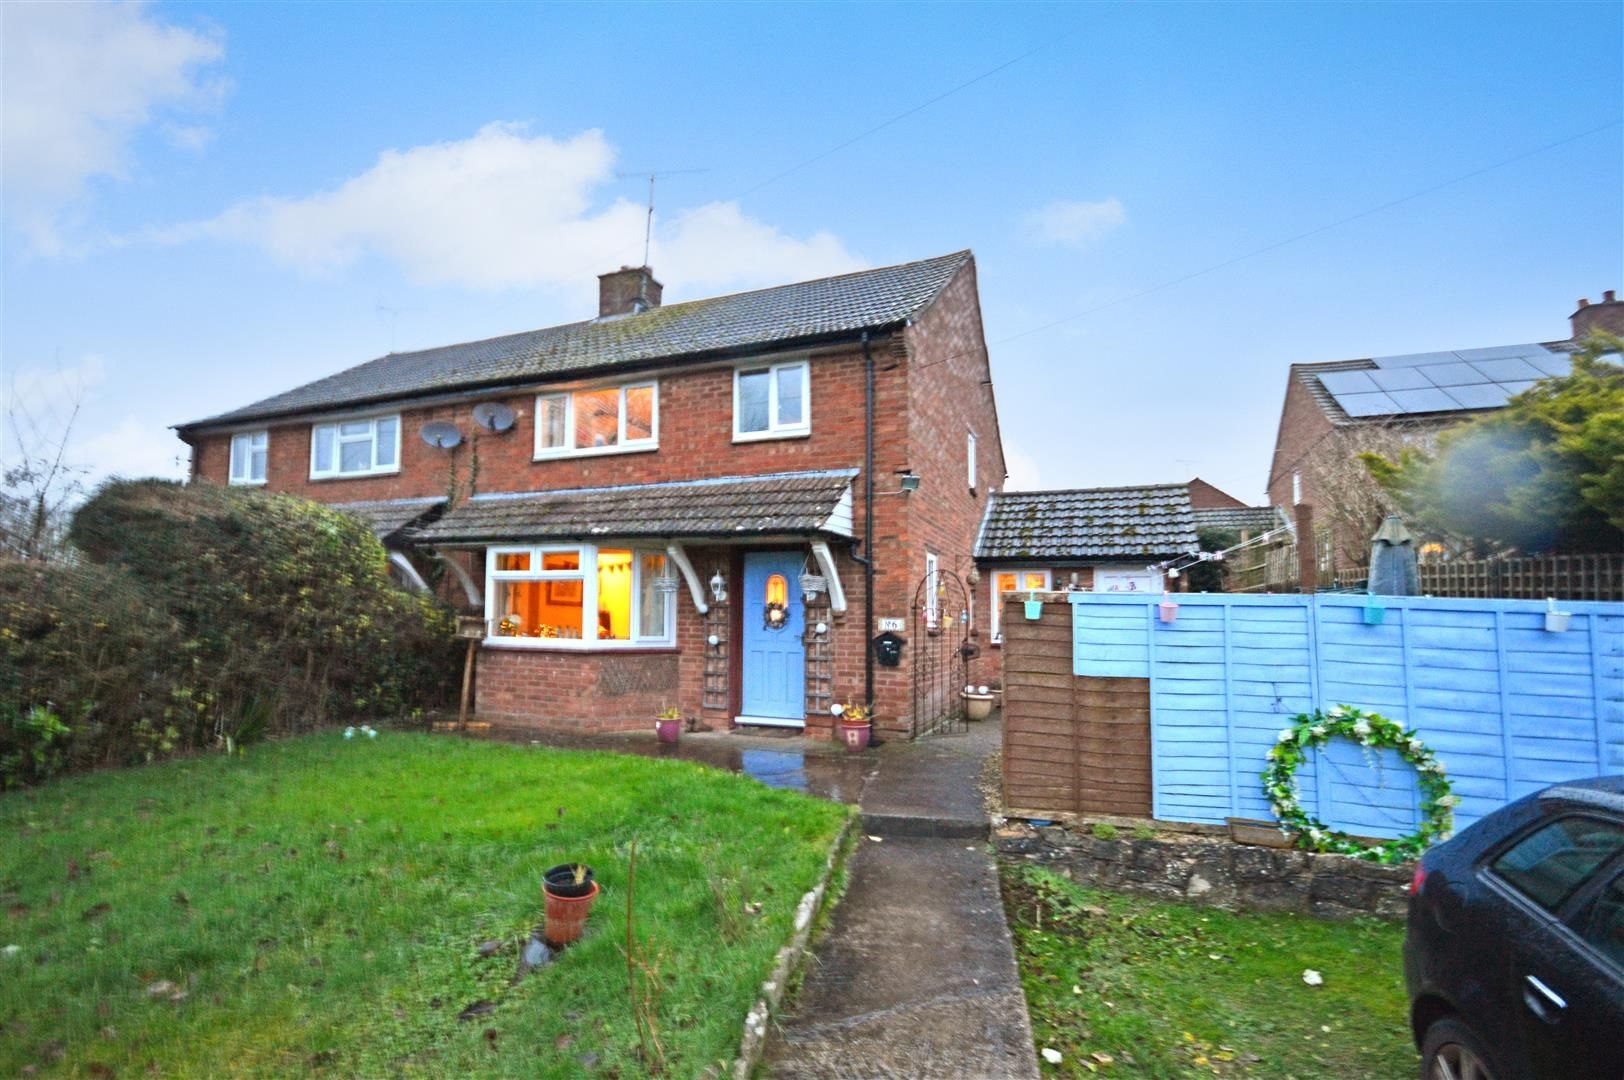 3 bed semi-detached for sale in Much Birch 1